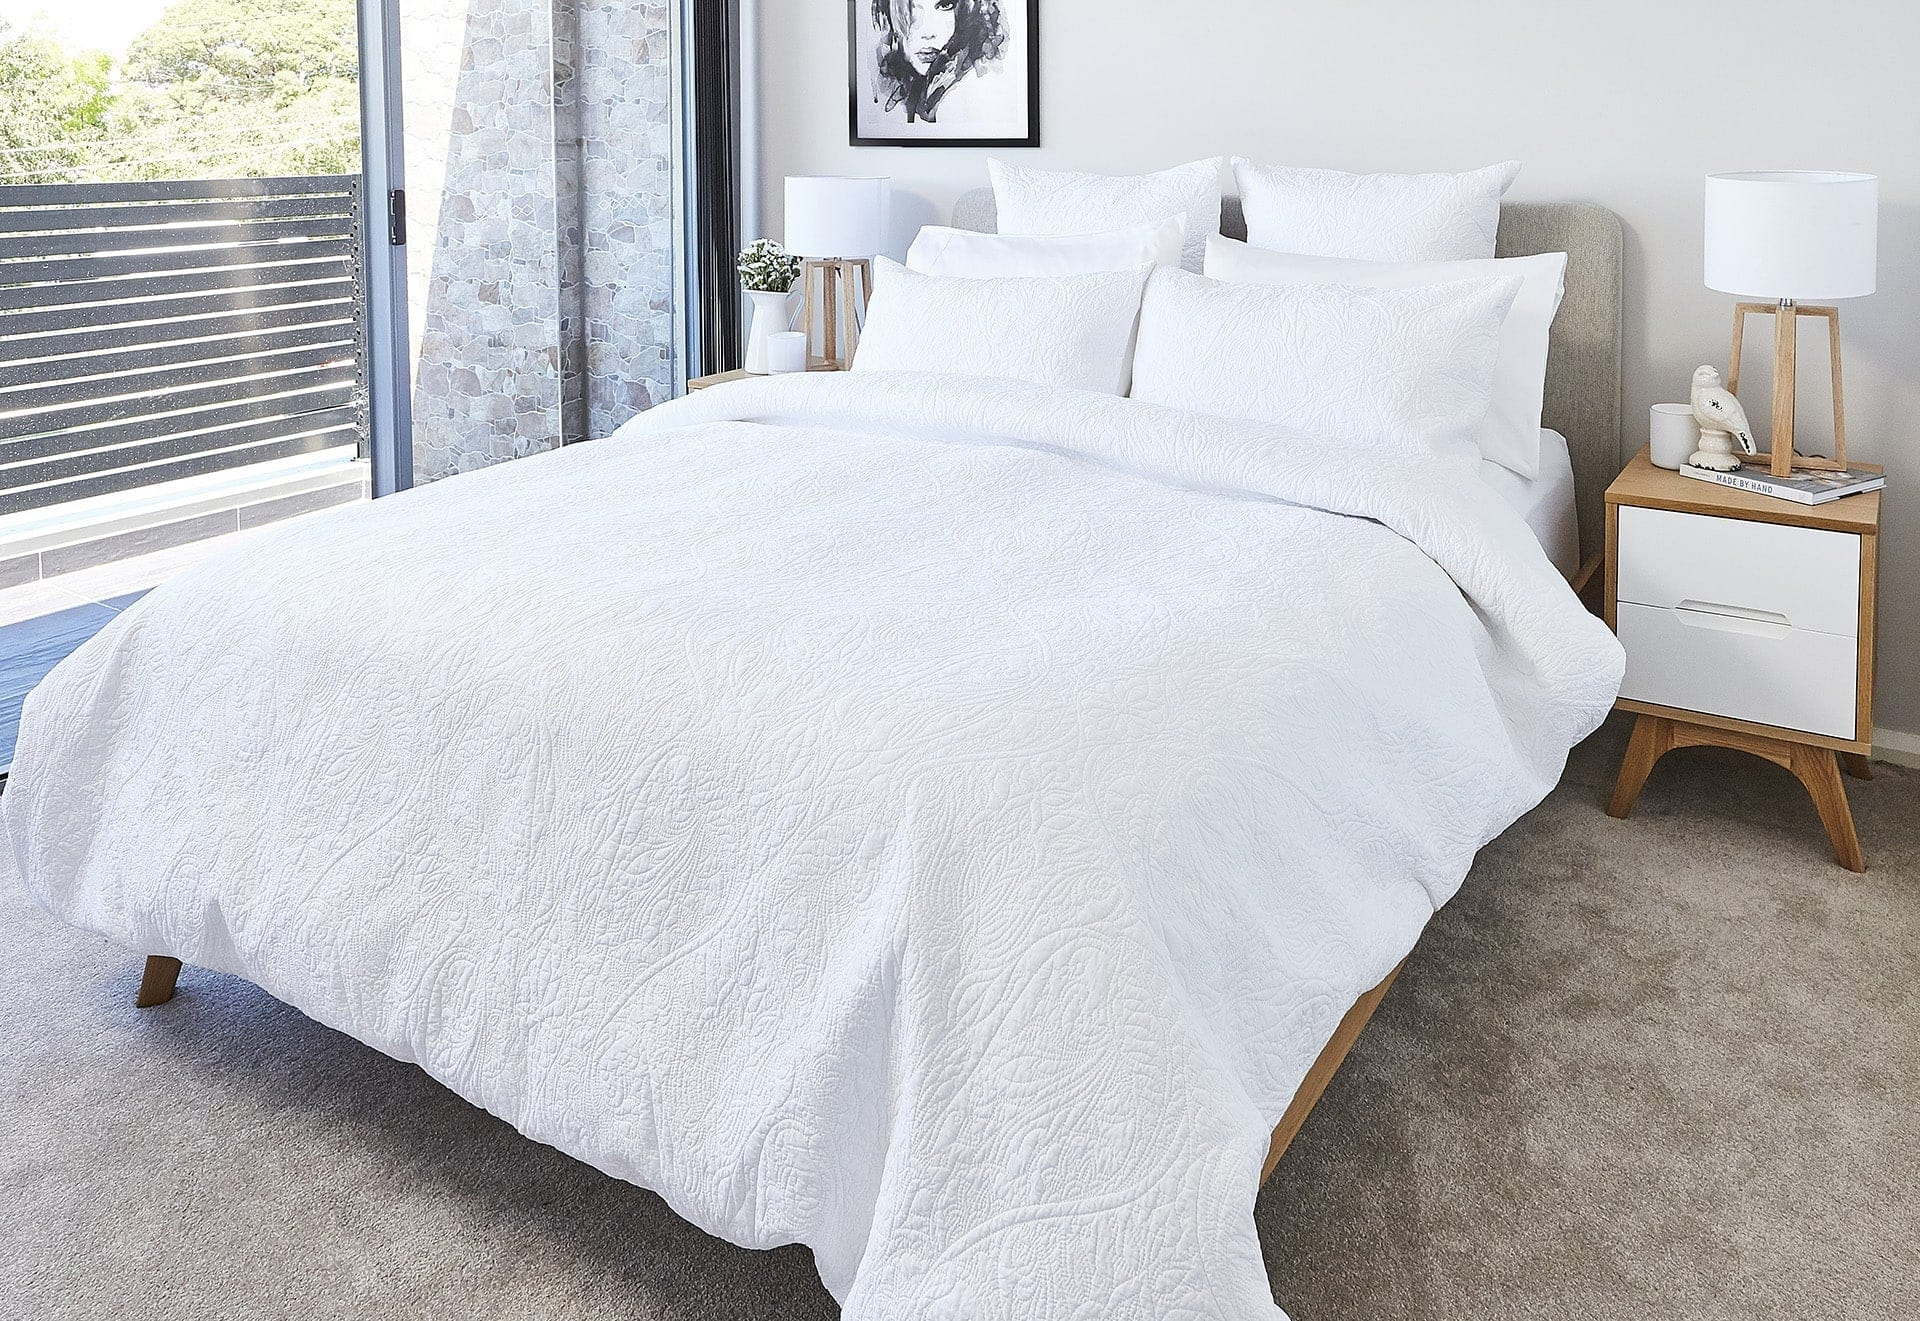 lorraine lea nook white bed linen with stitch detail in all white bedroom